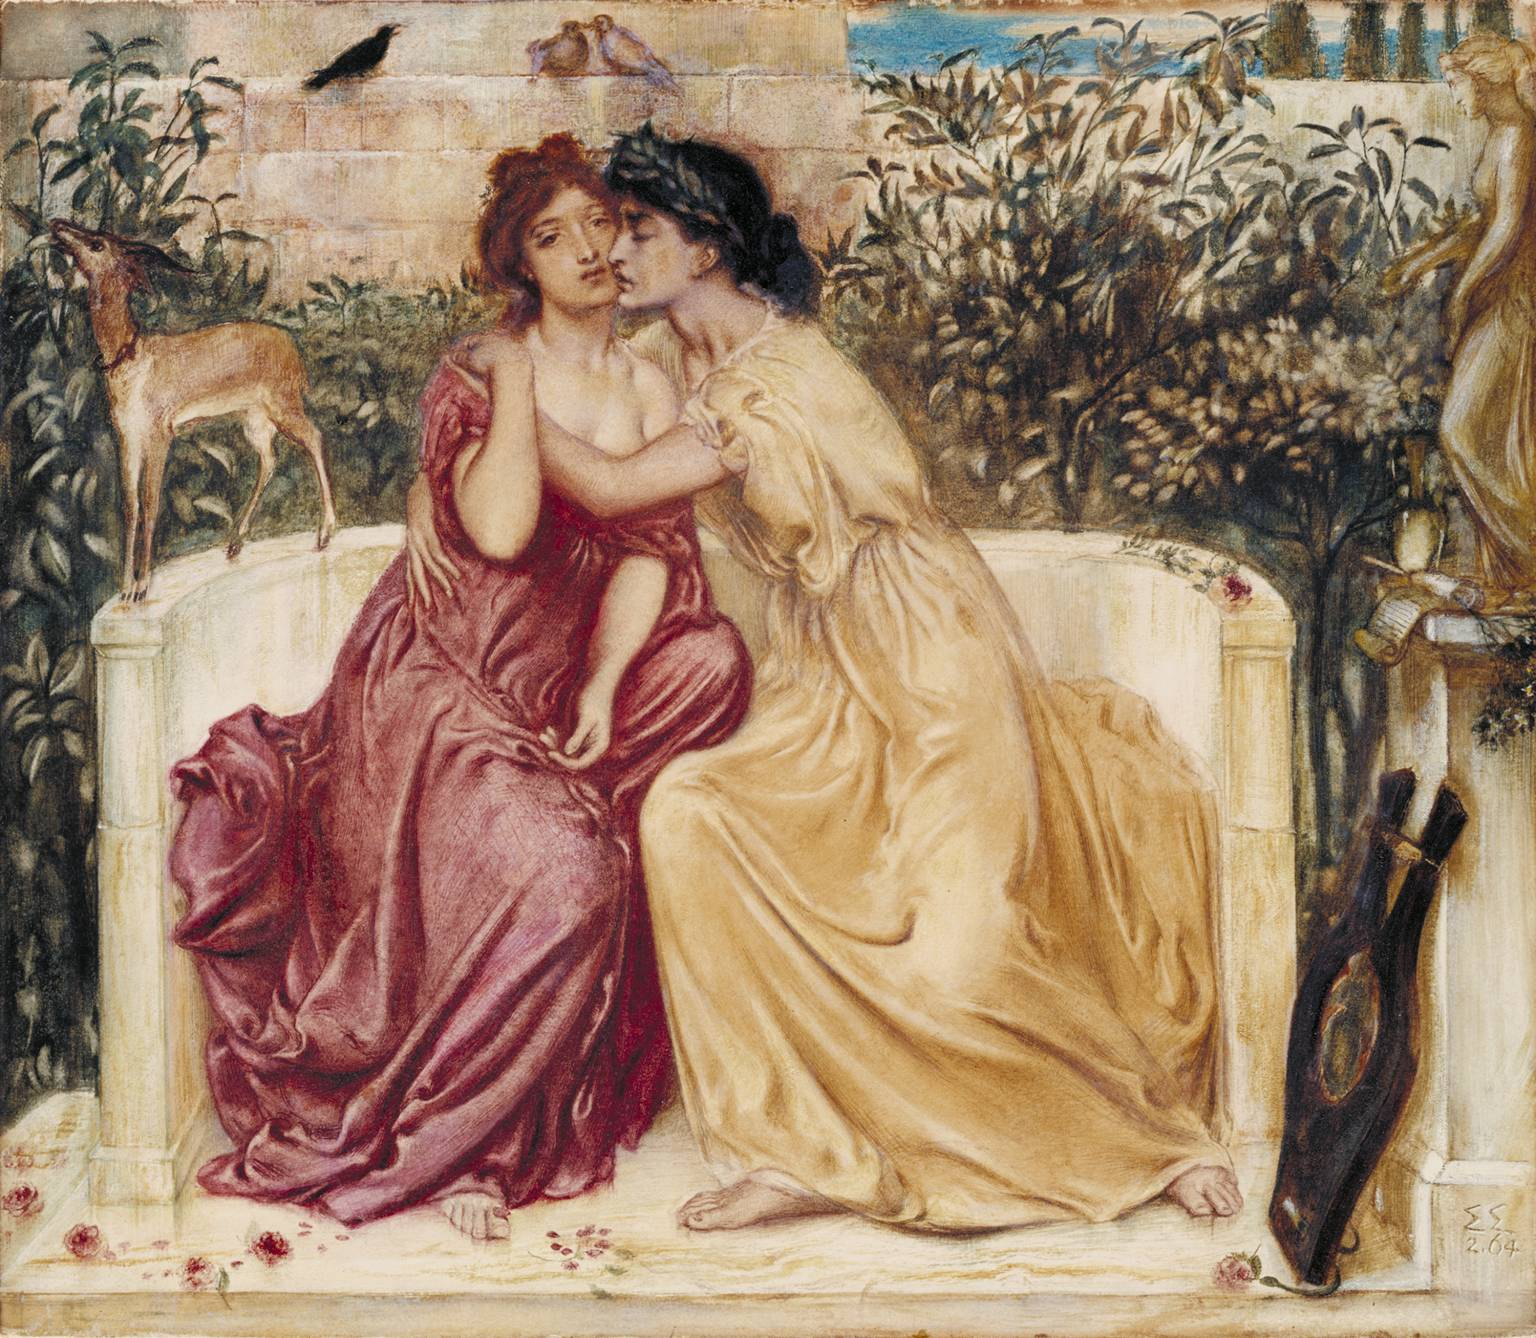 """The painting """"Sappho and Erinna in the Garden Mytelene"""" by Simeon Solomon, in which a pale woman with brown hair wearing a red dress is held by another pale woman with black hair wearing a yellow dress. They sit together on a stone bench surrounded by nature."""